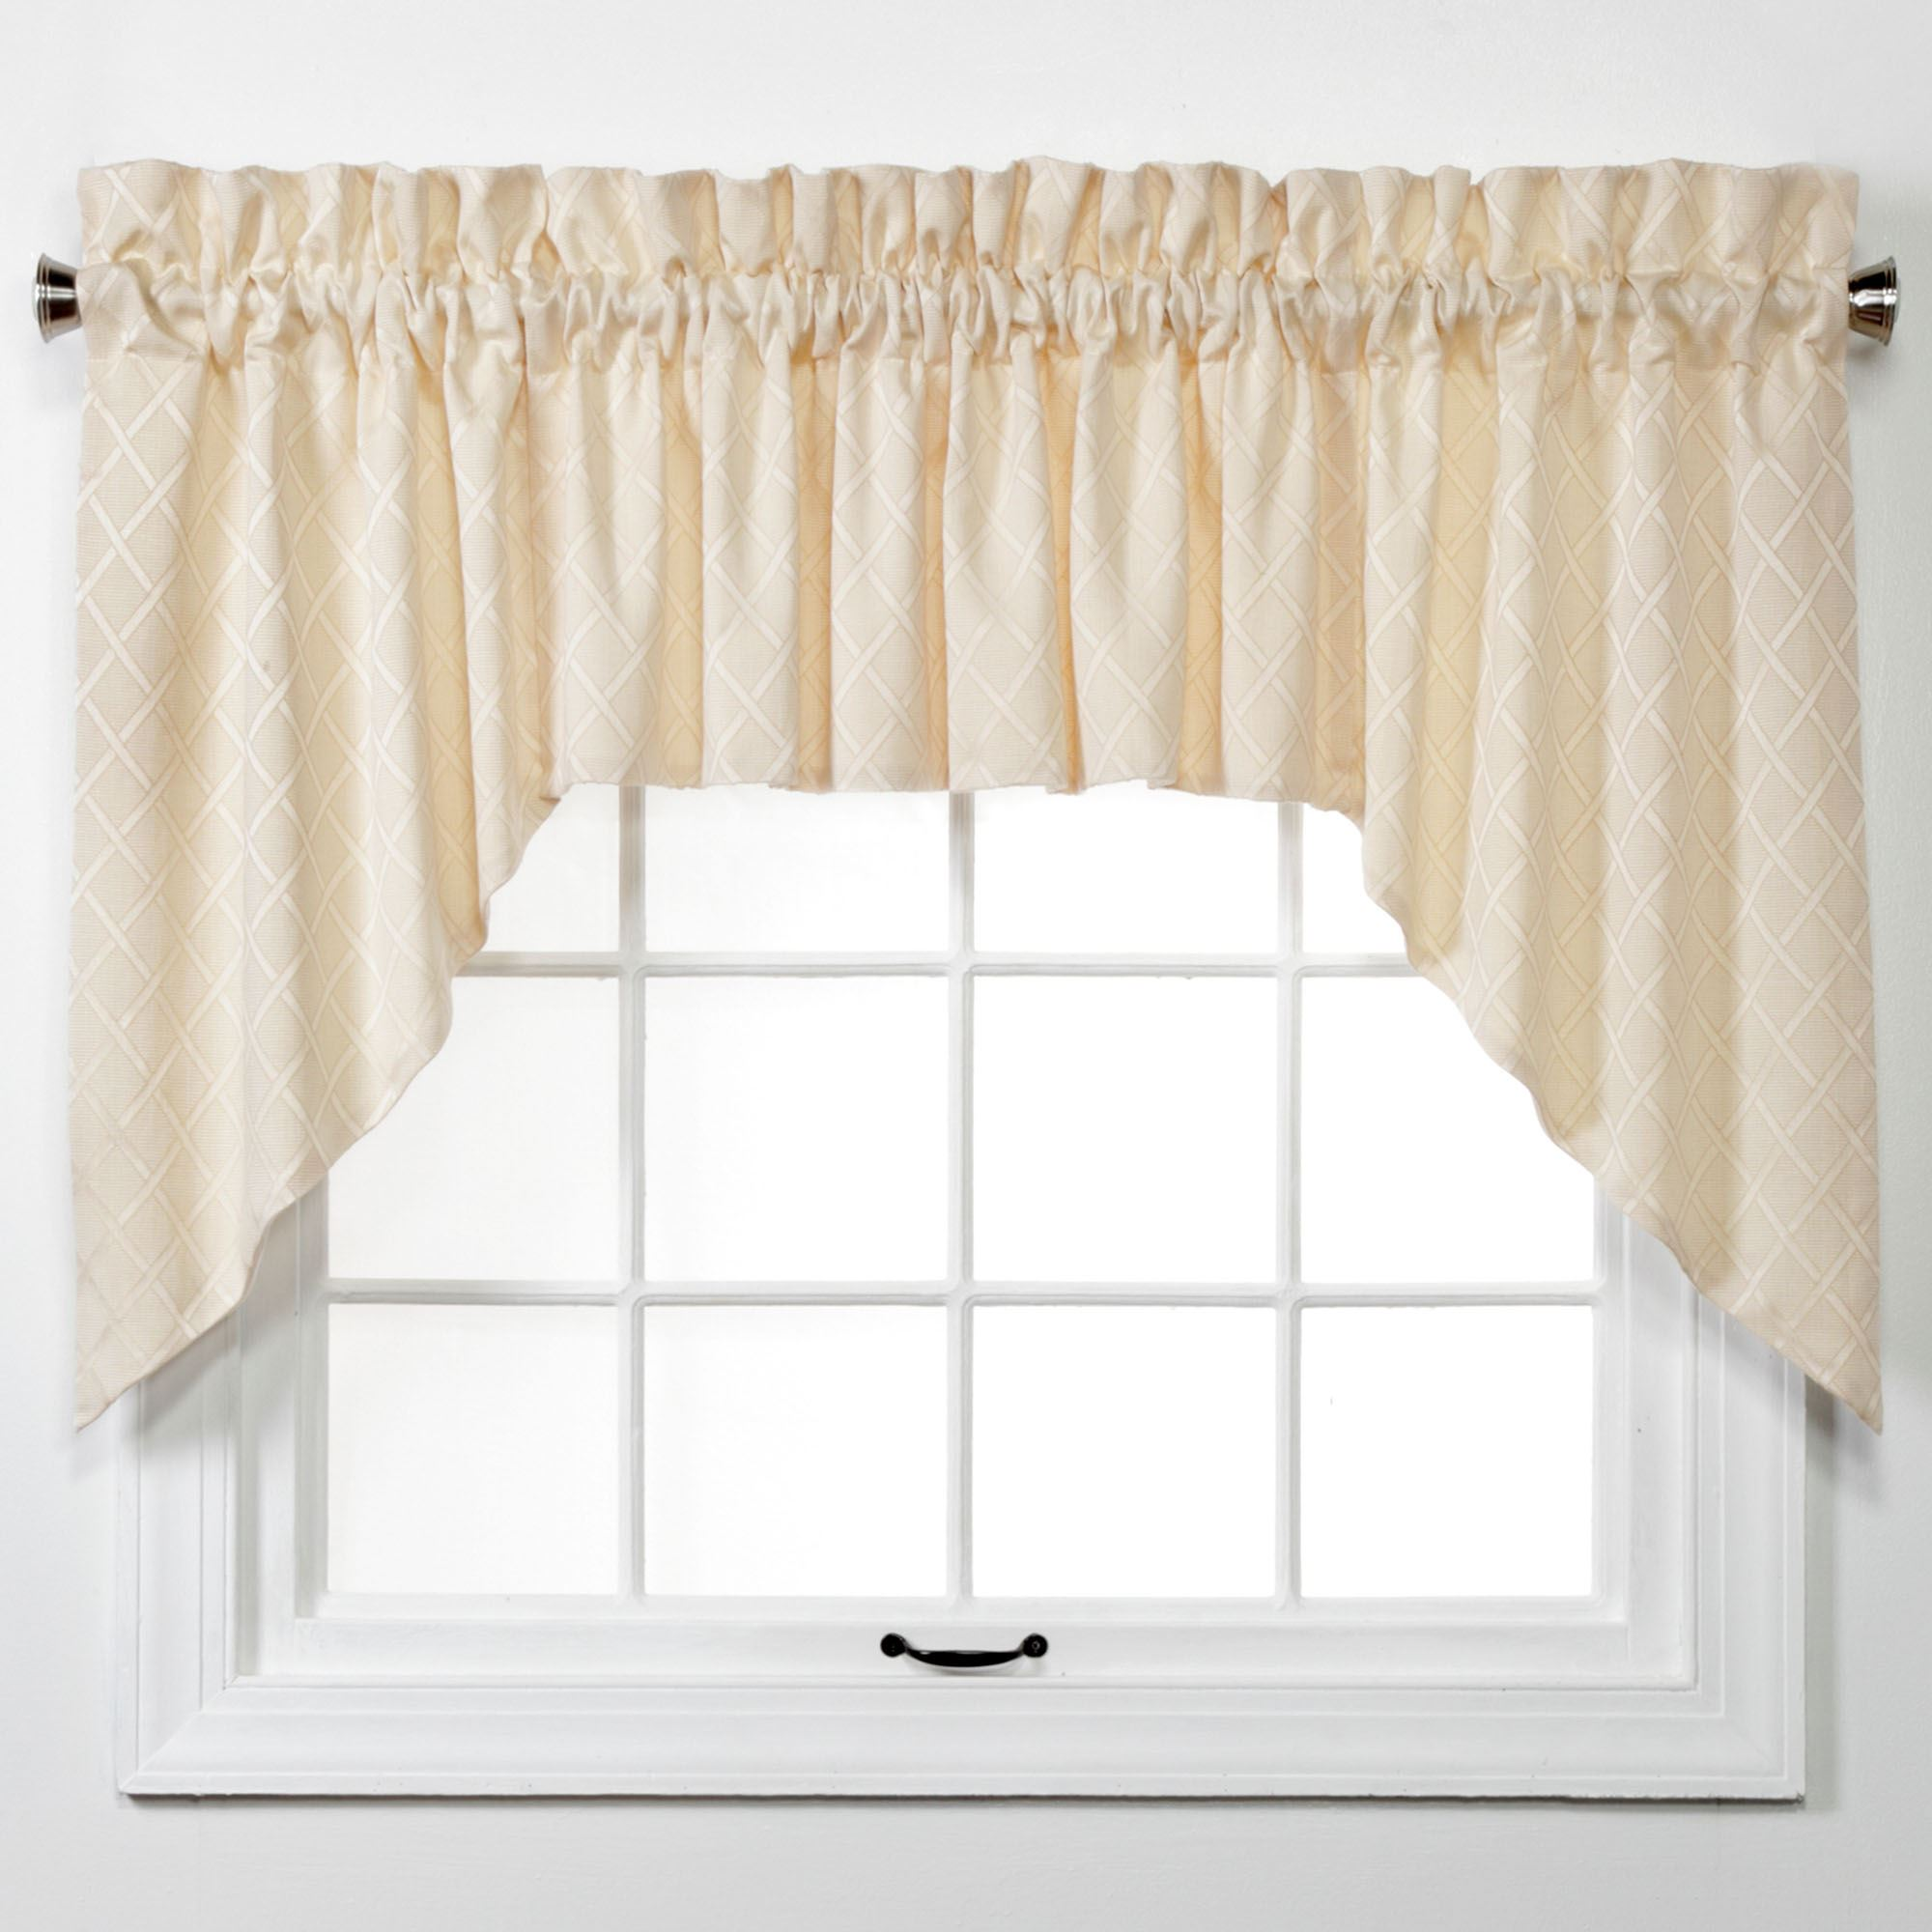 Baines Latticework 3 Pc Swag Valance Set